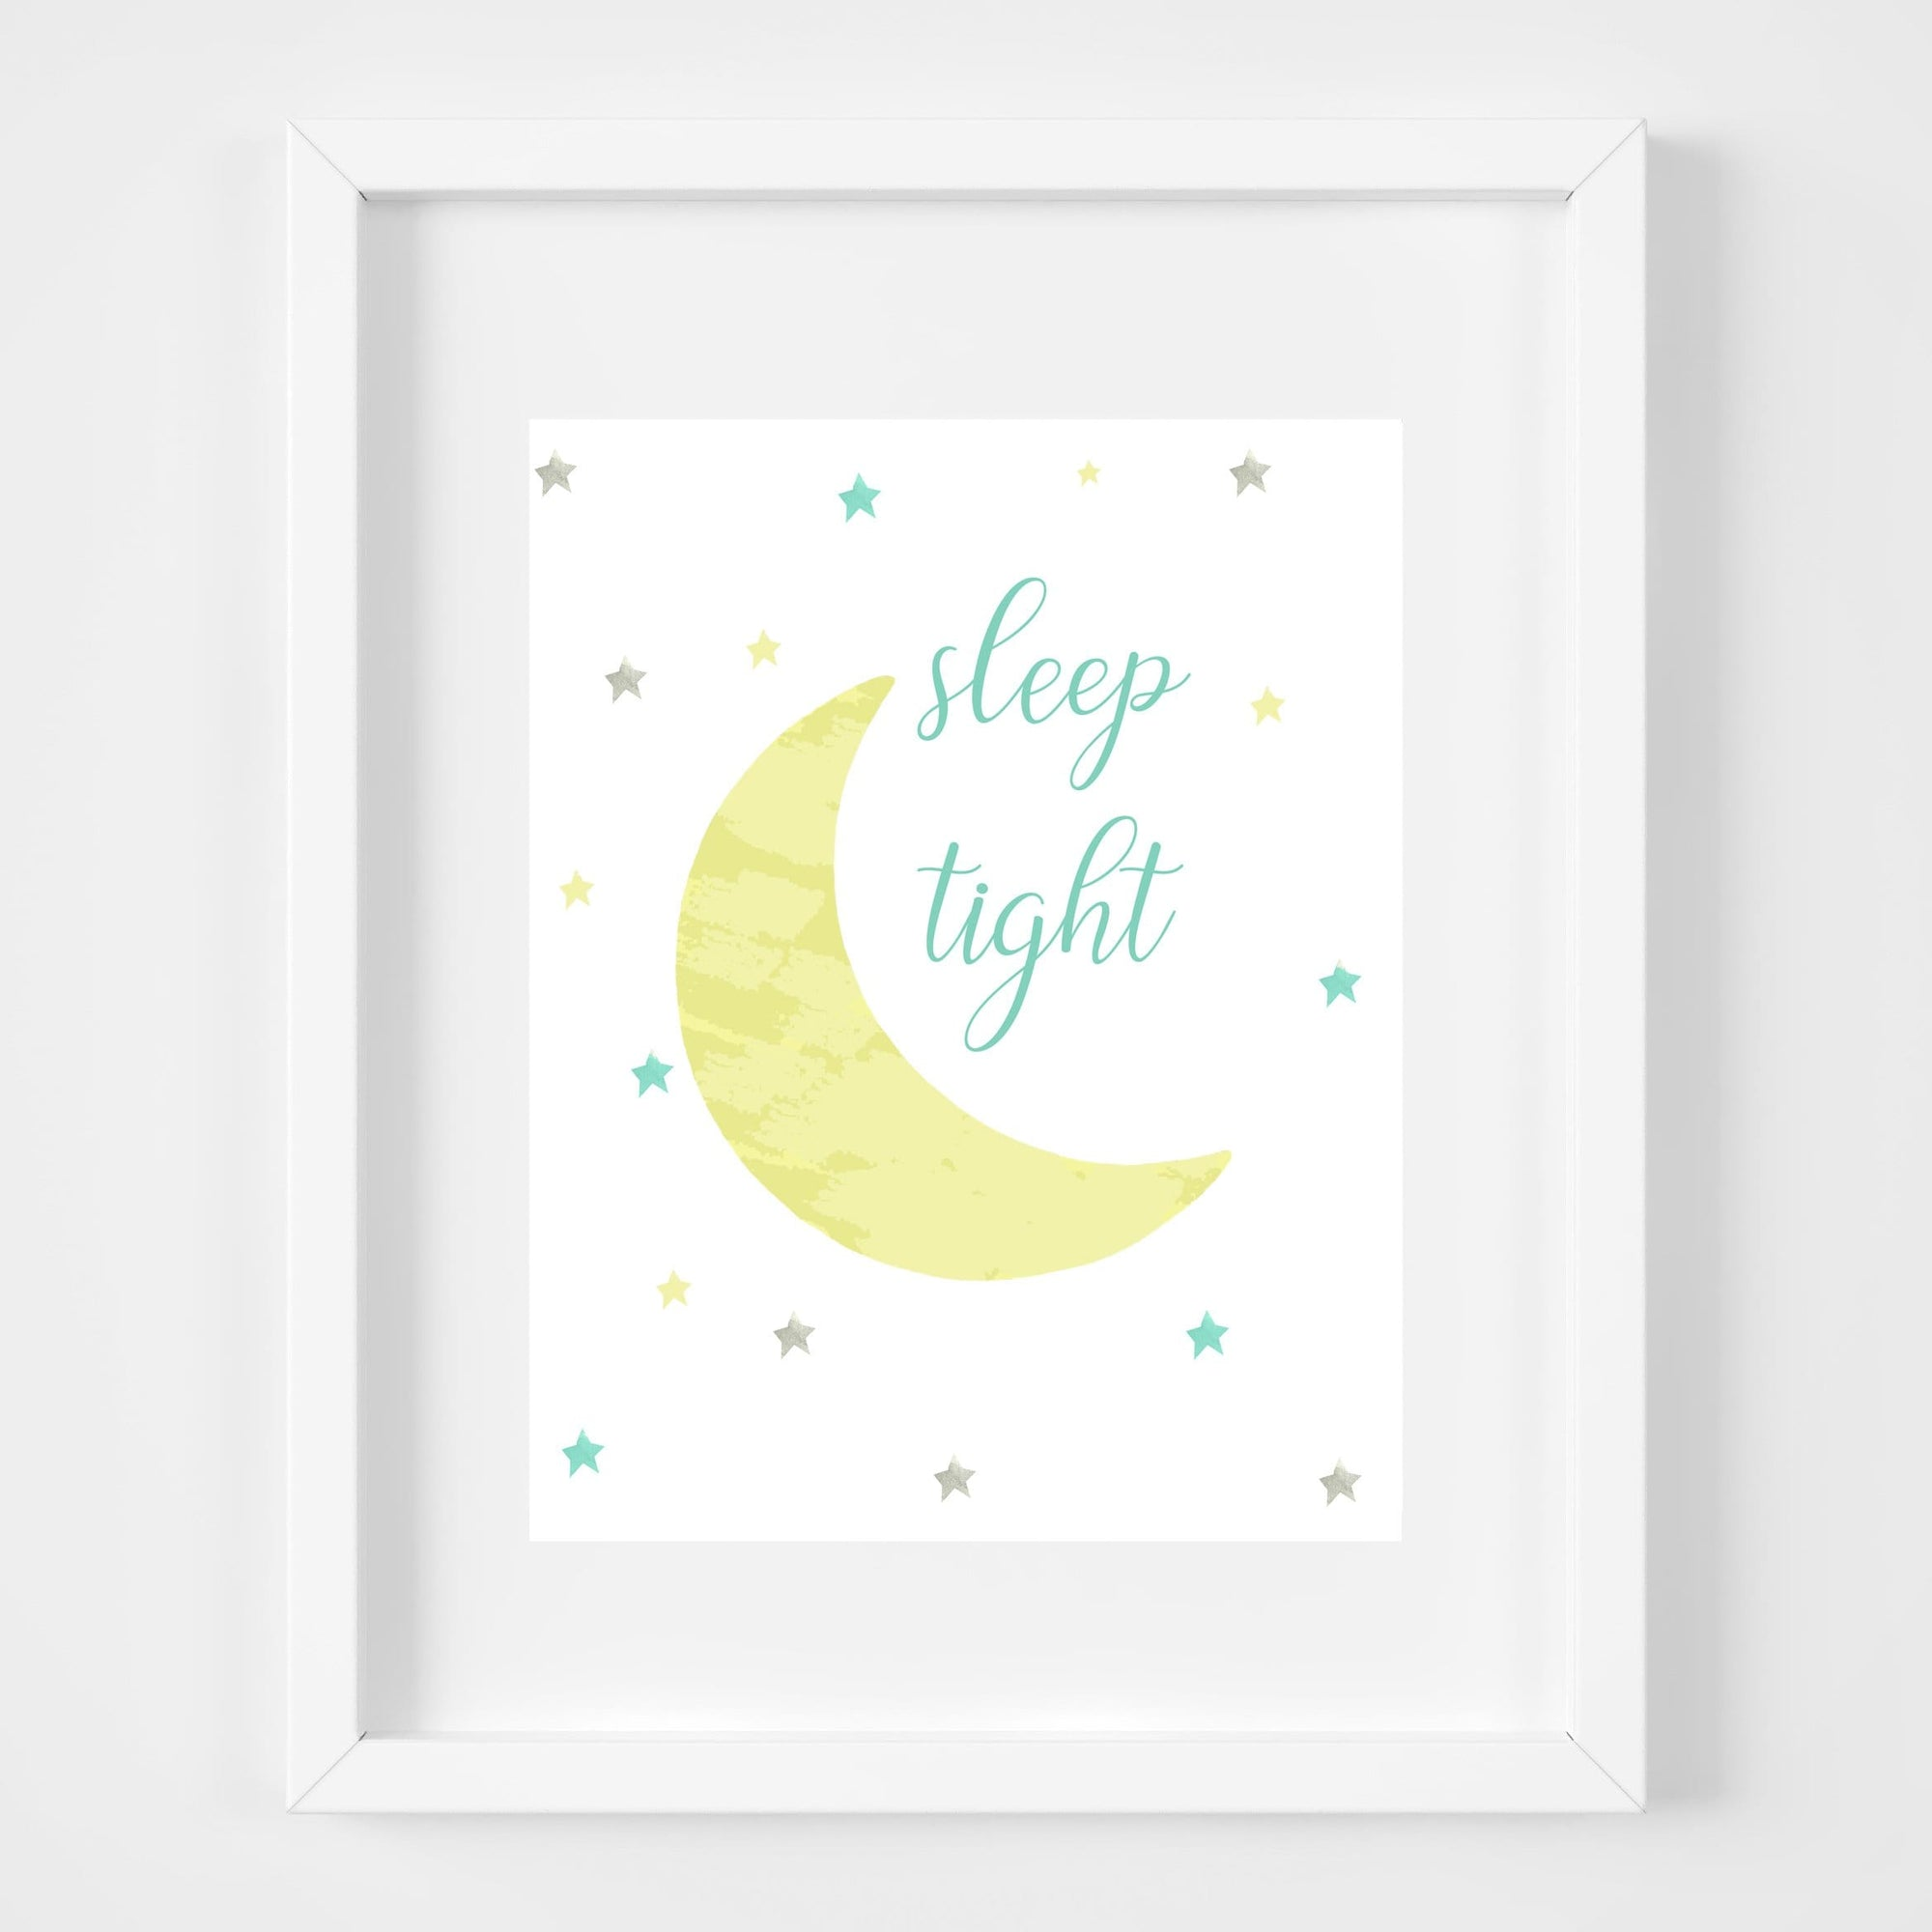 bebemoss.com Sleep tight print handmade by moms  gifts with purpose